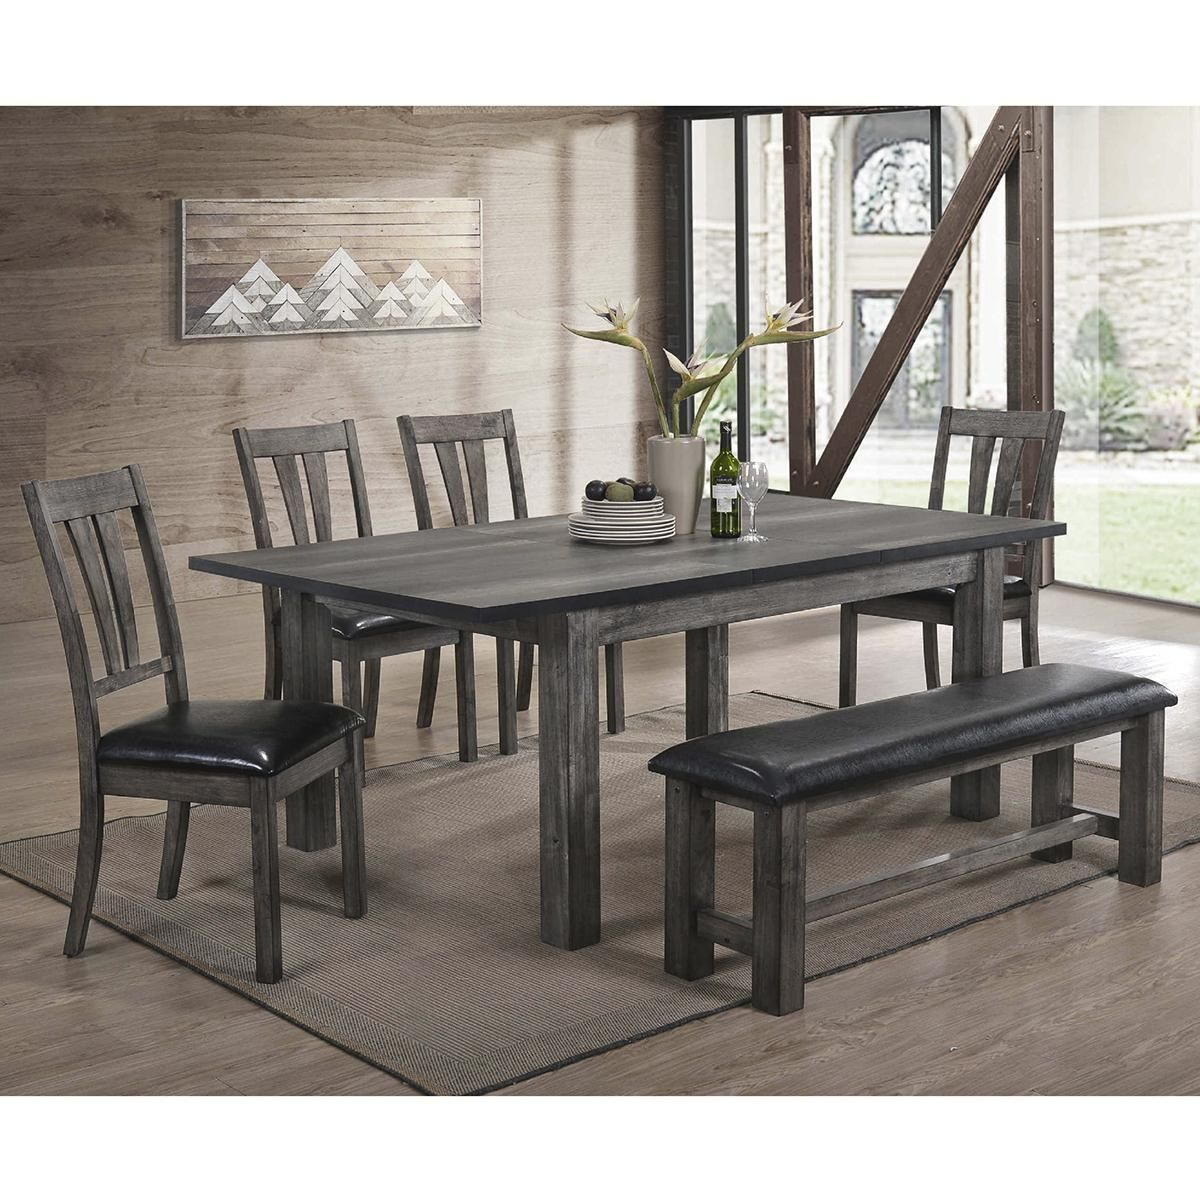 26++ Mayberry hill nathan 6 piece dining set in gray oak Inspiration